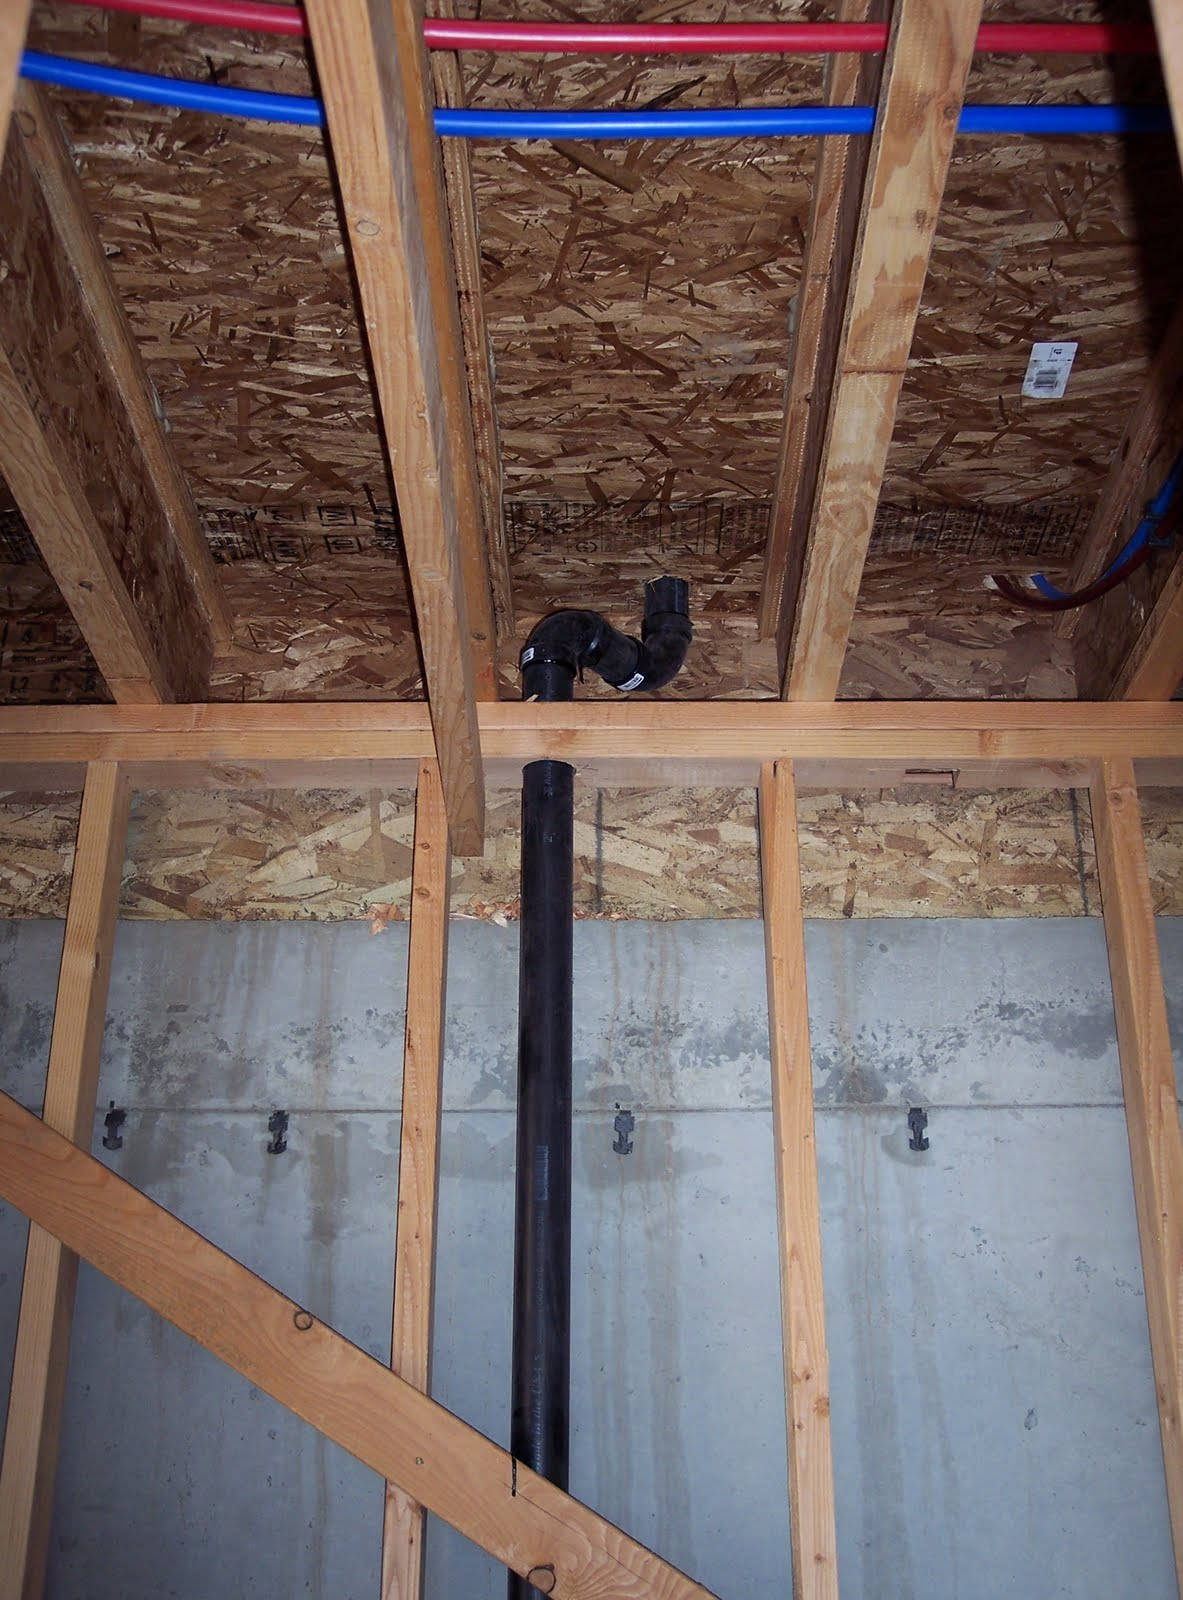 Building A Home Plumbing Rough In Continued 9 11 2010